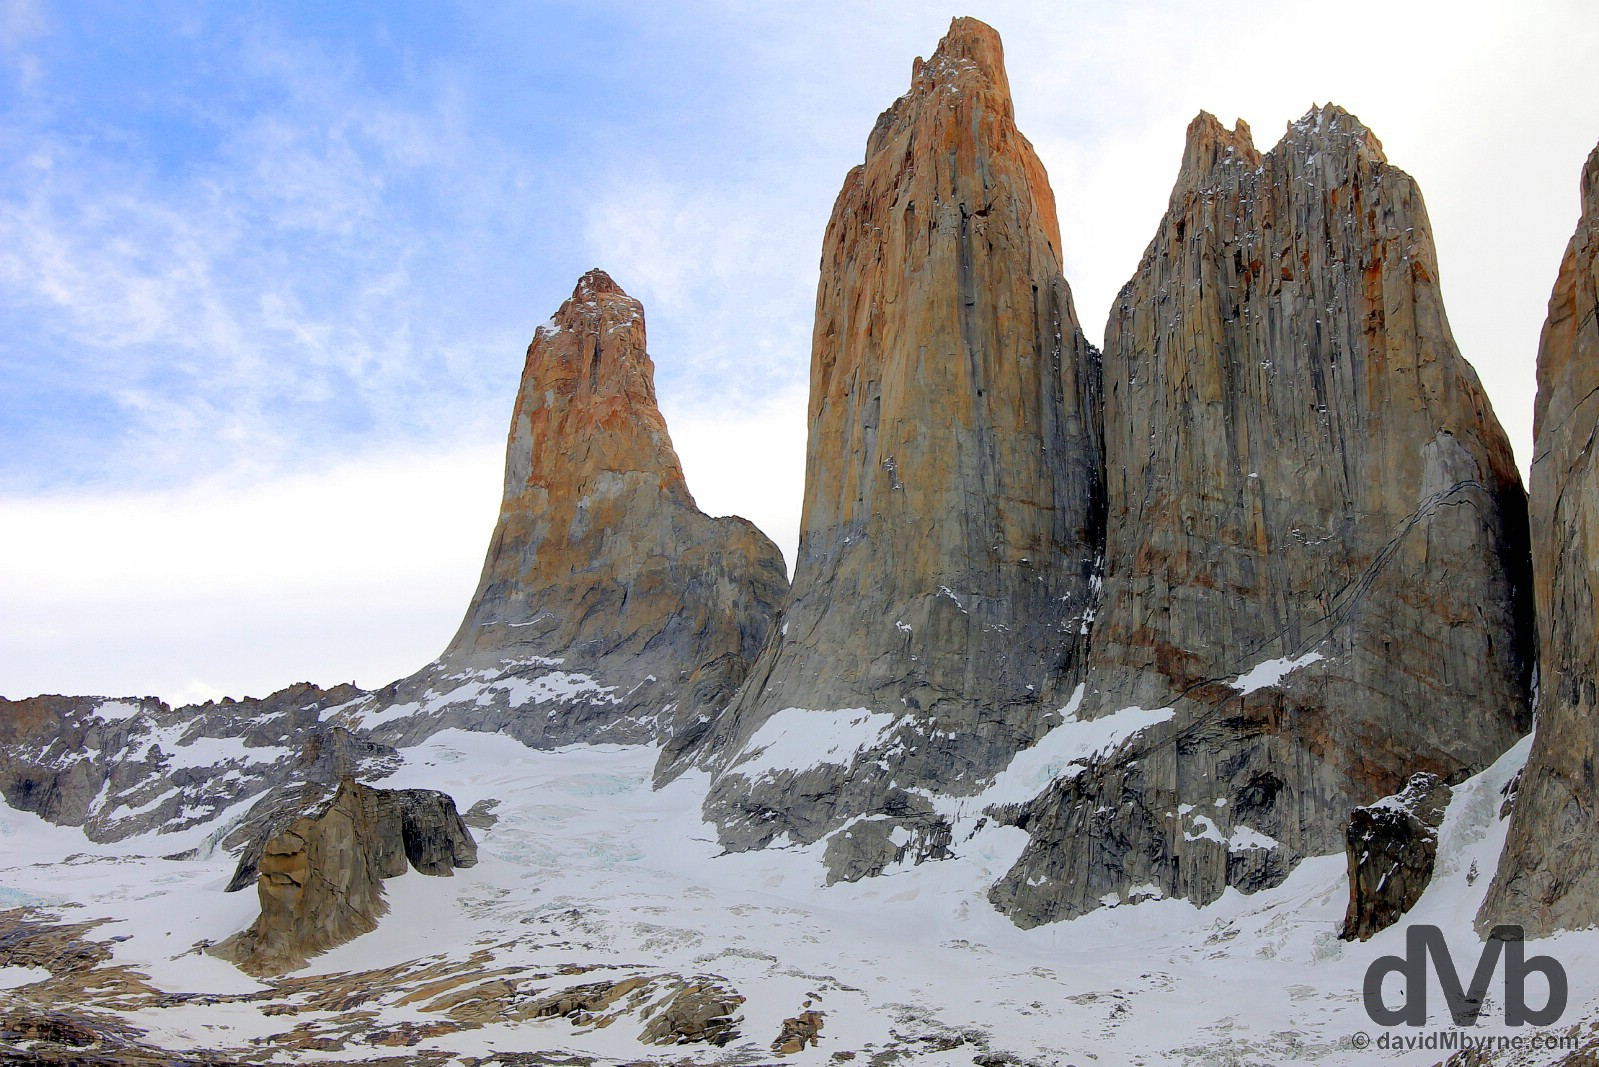 The iconic Torres del Paine, Towers of Paine, in Torres del Paine National Park, Chile. November 23, 2015.